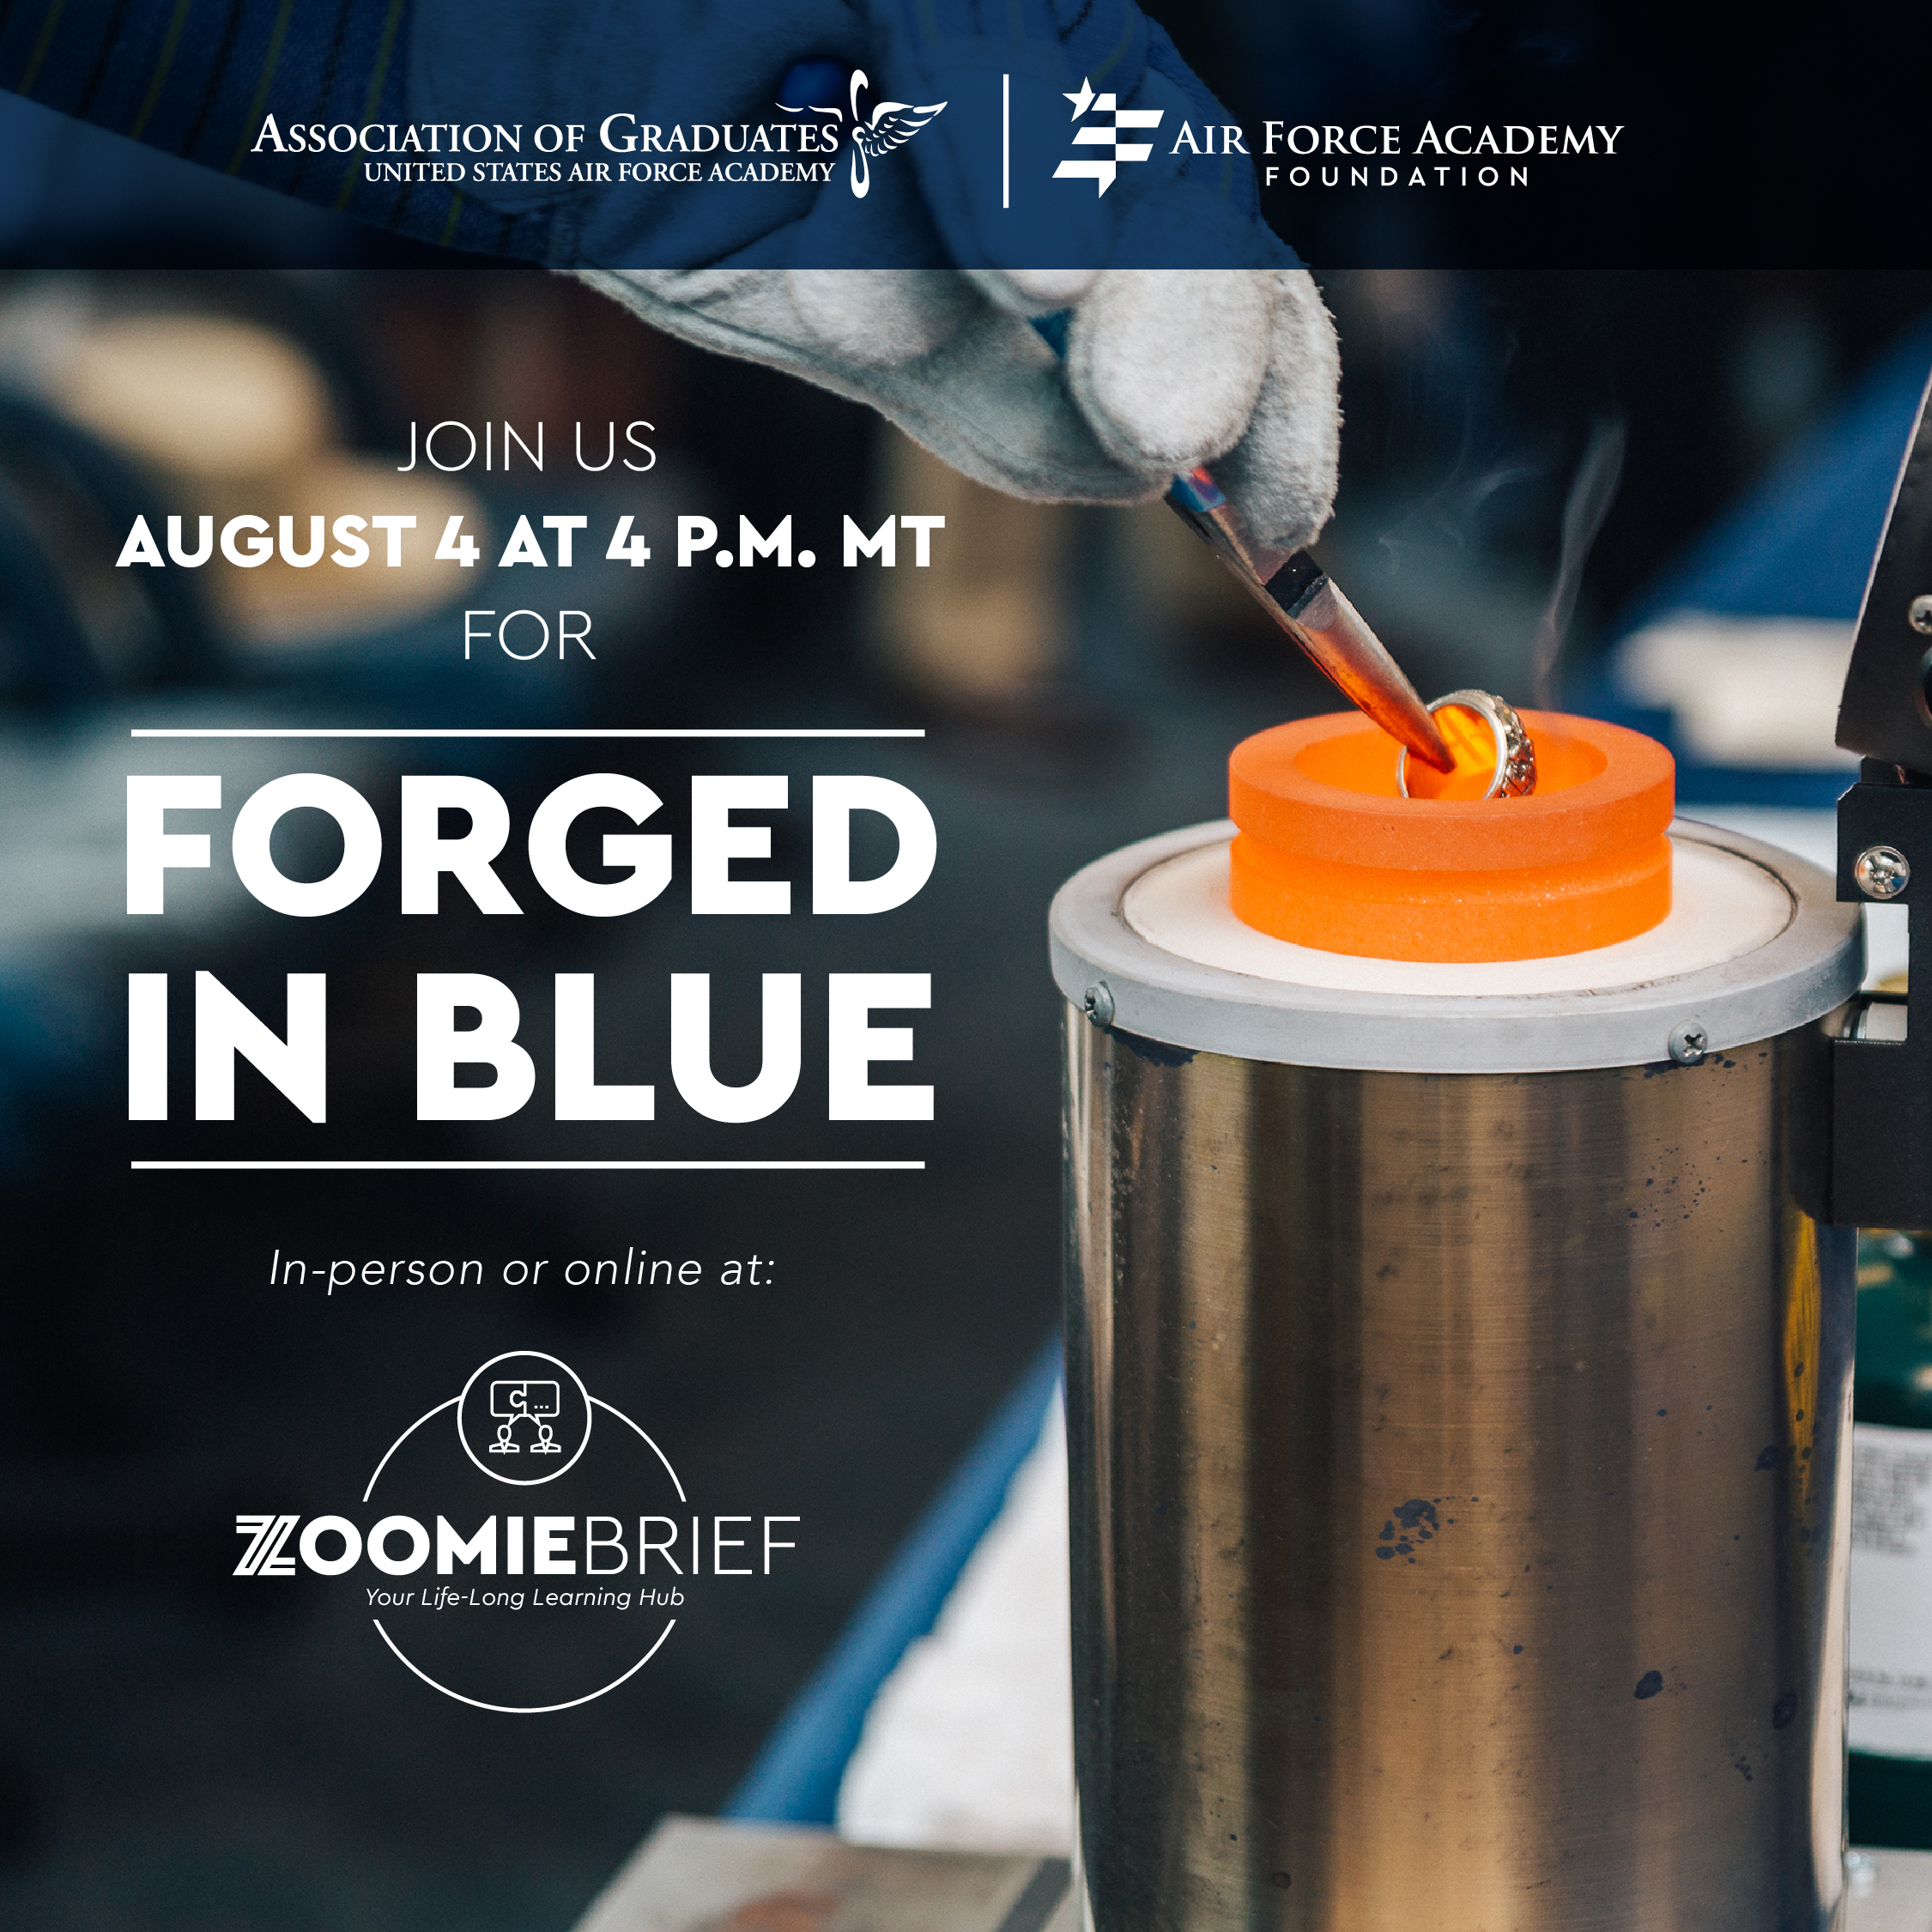 Image for Forged in Blue webinar